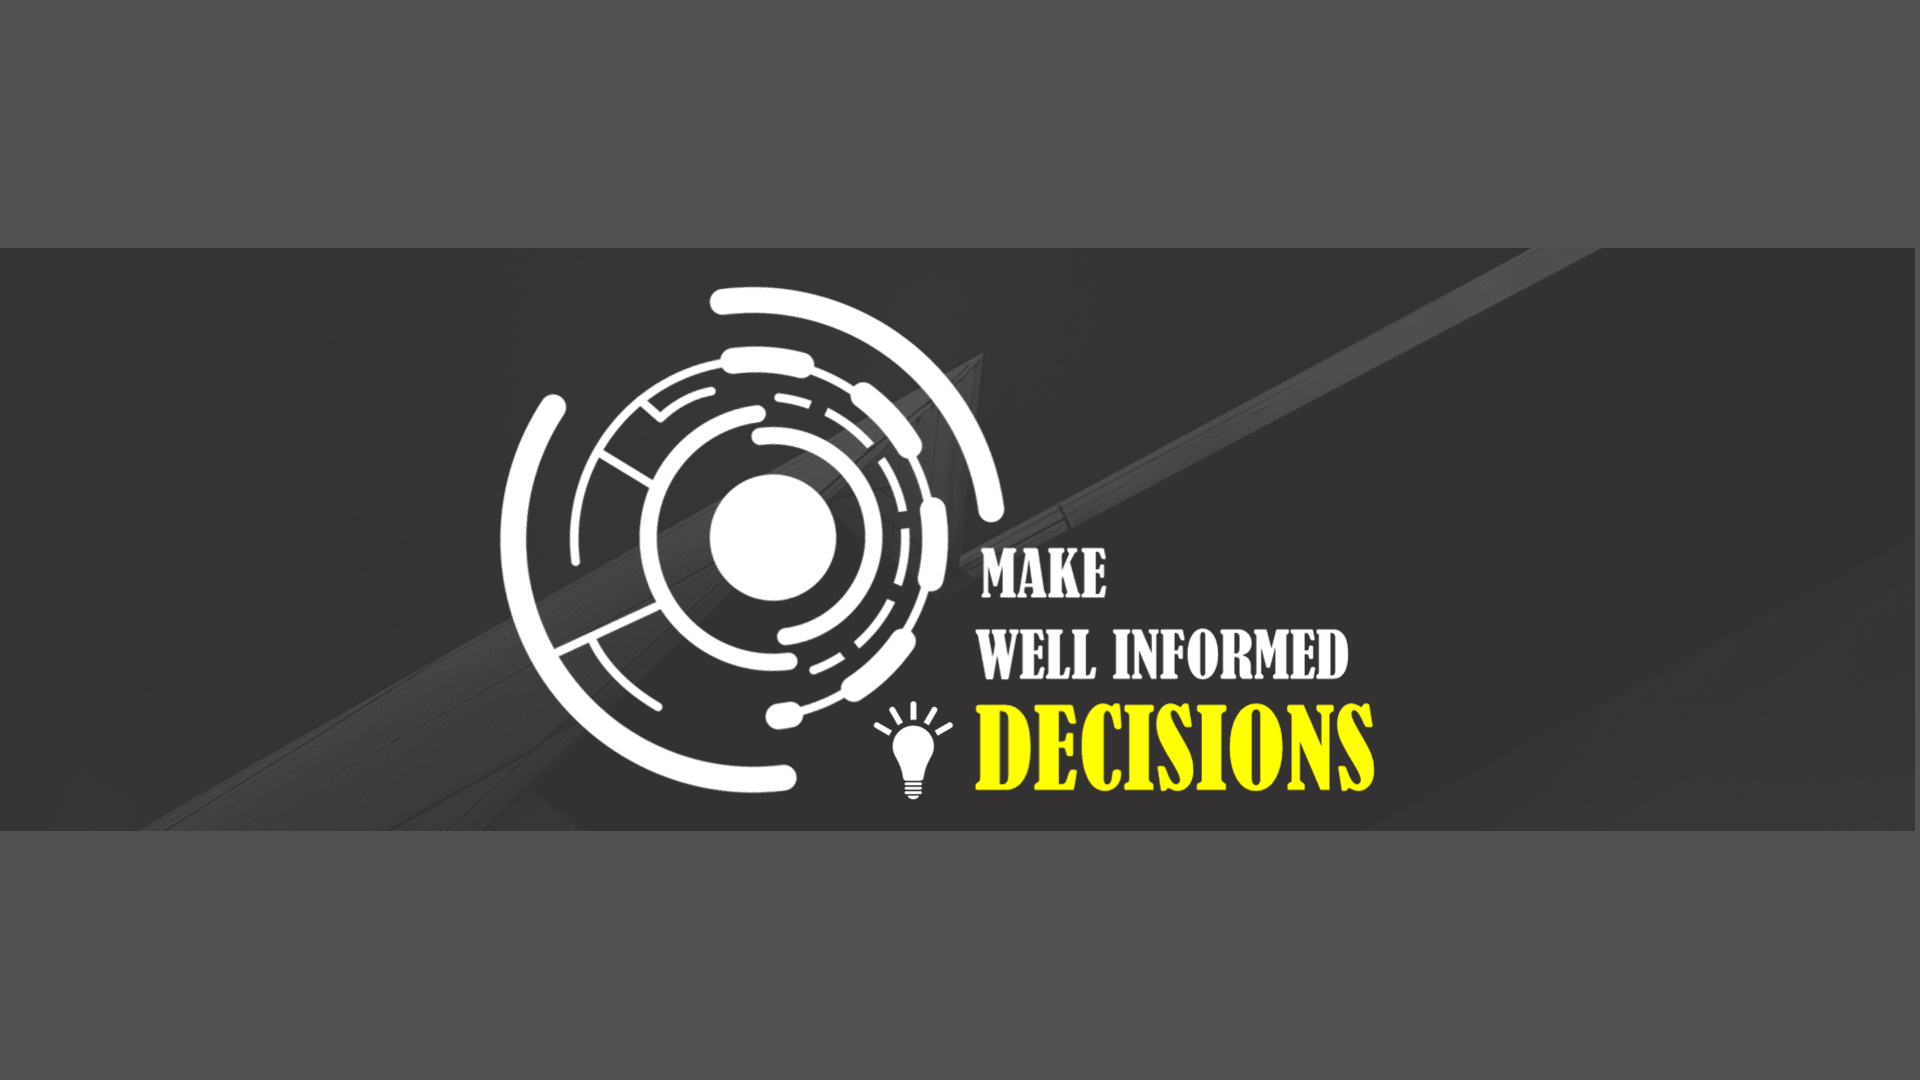 Make well informed decisions